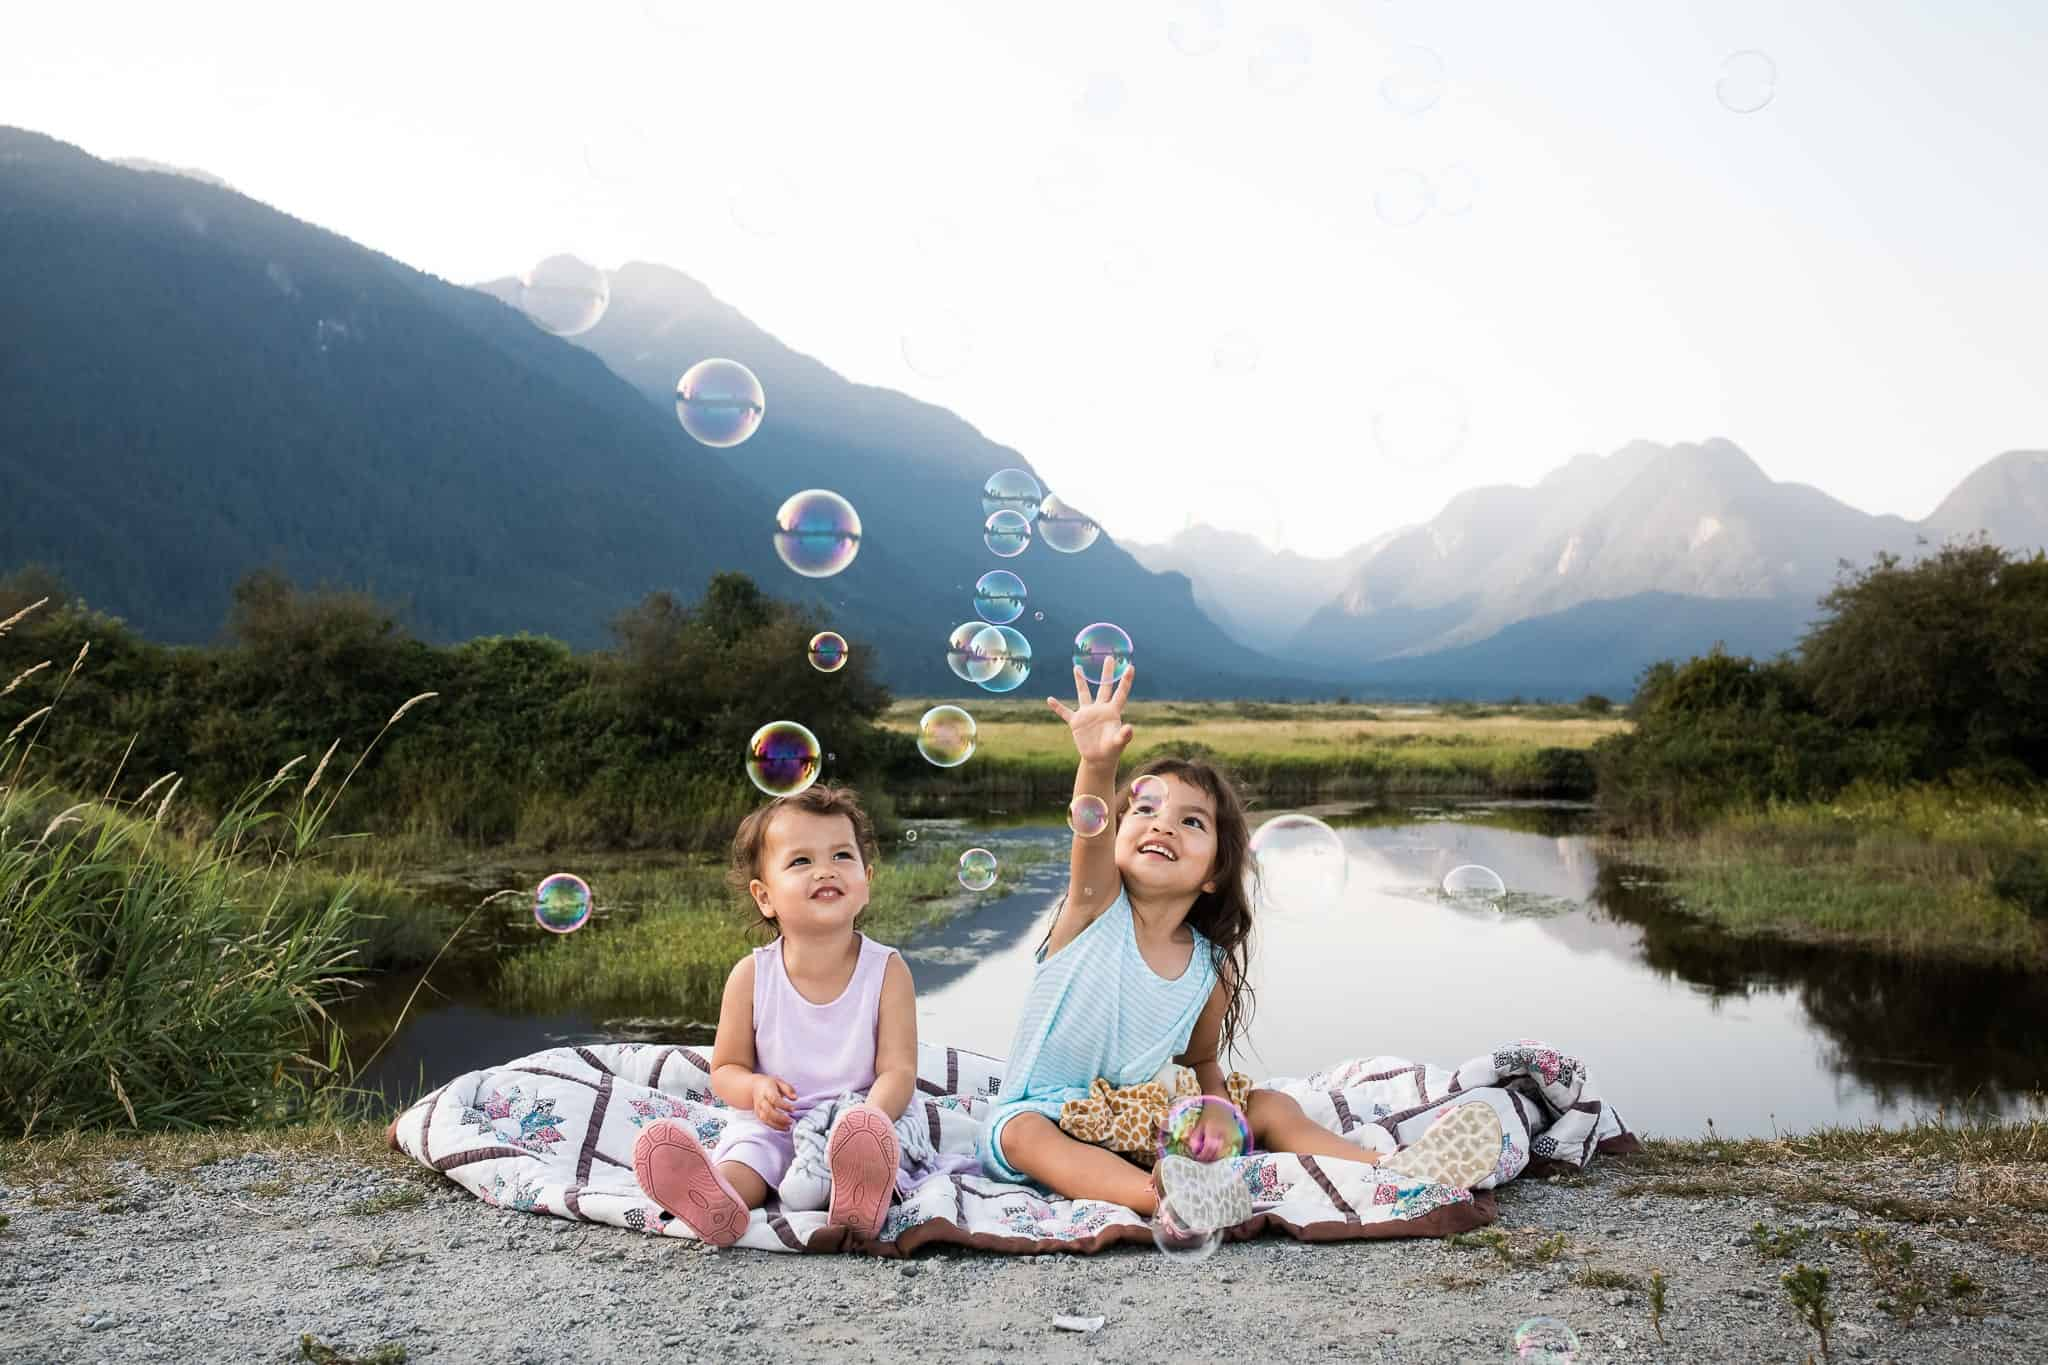 little girls sitting on blanket catching bubbles with lake and mountains behind them